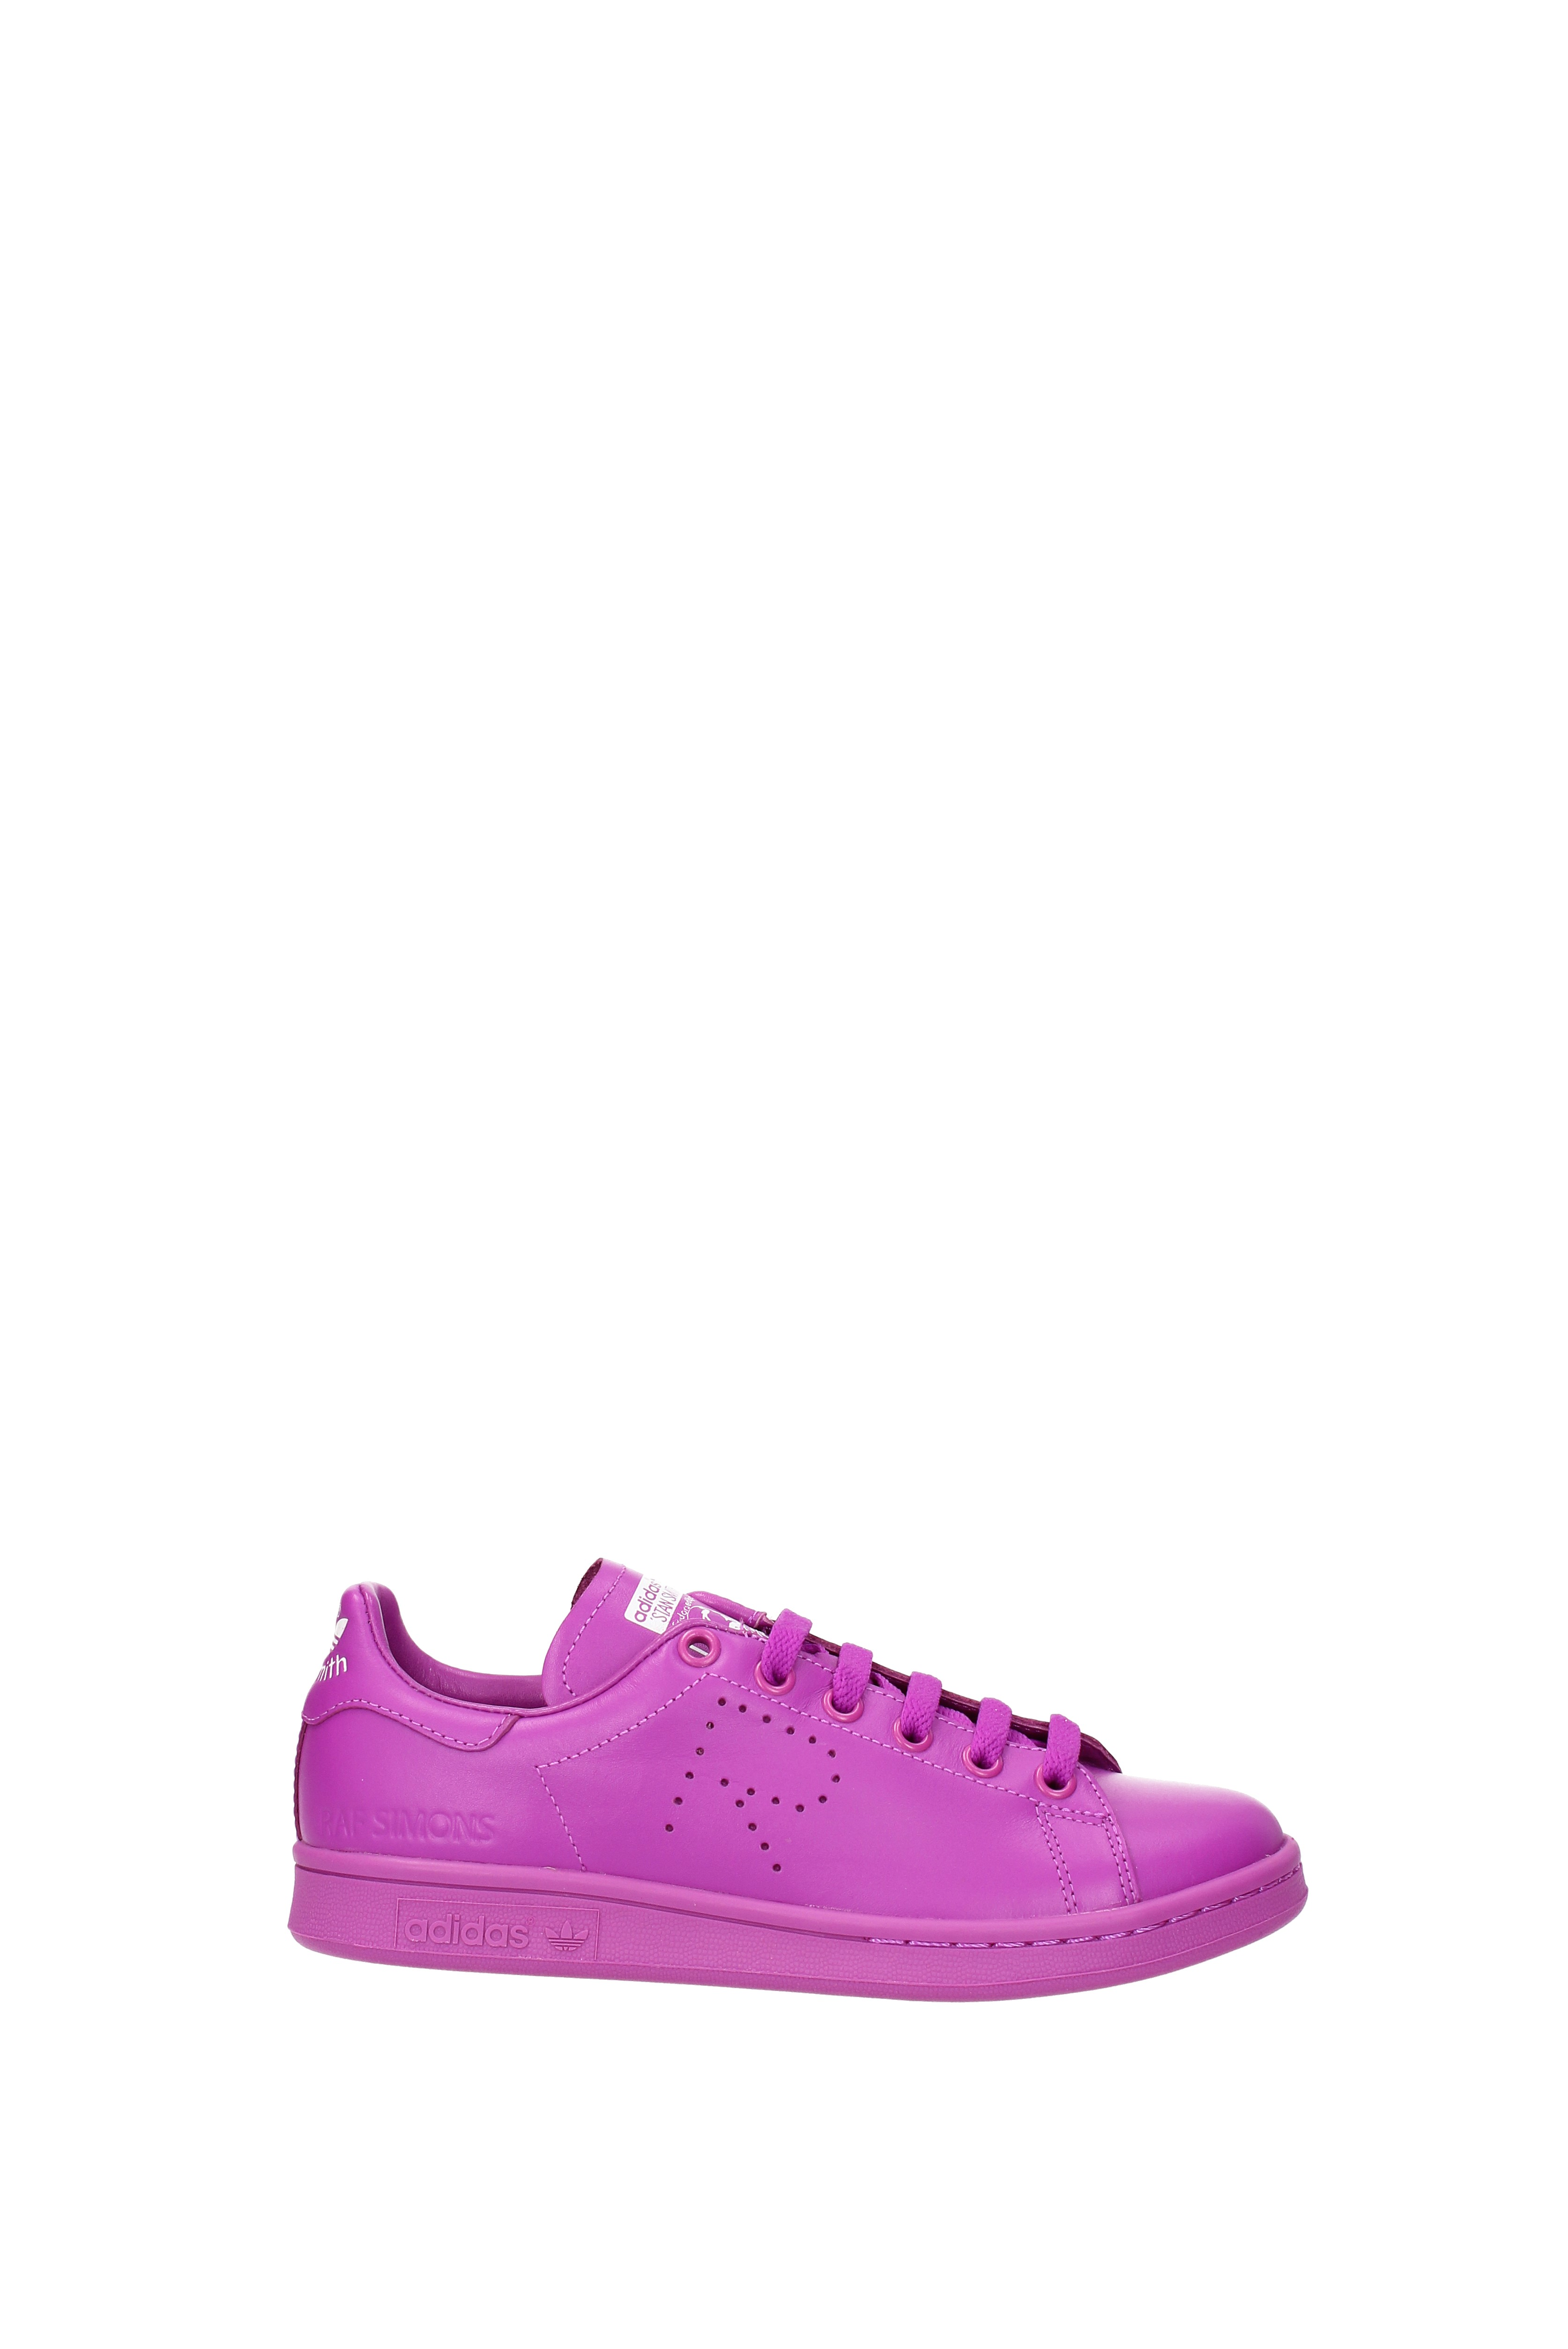 cheap for discount a9031 cbbd1 ... Sneakers Adidas raf simons stan stan stan smith Unisex - Pelle (S7459)  465051 ...